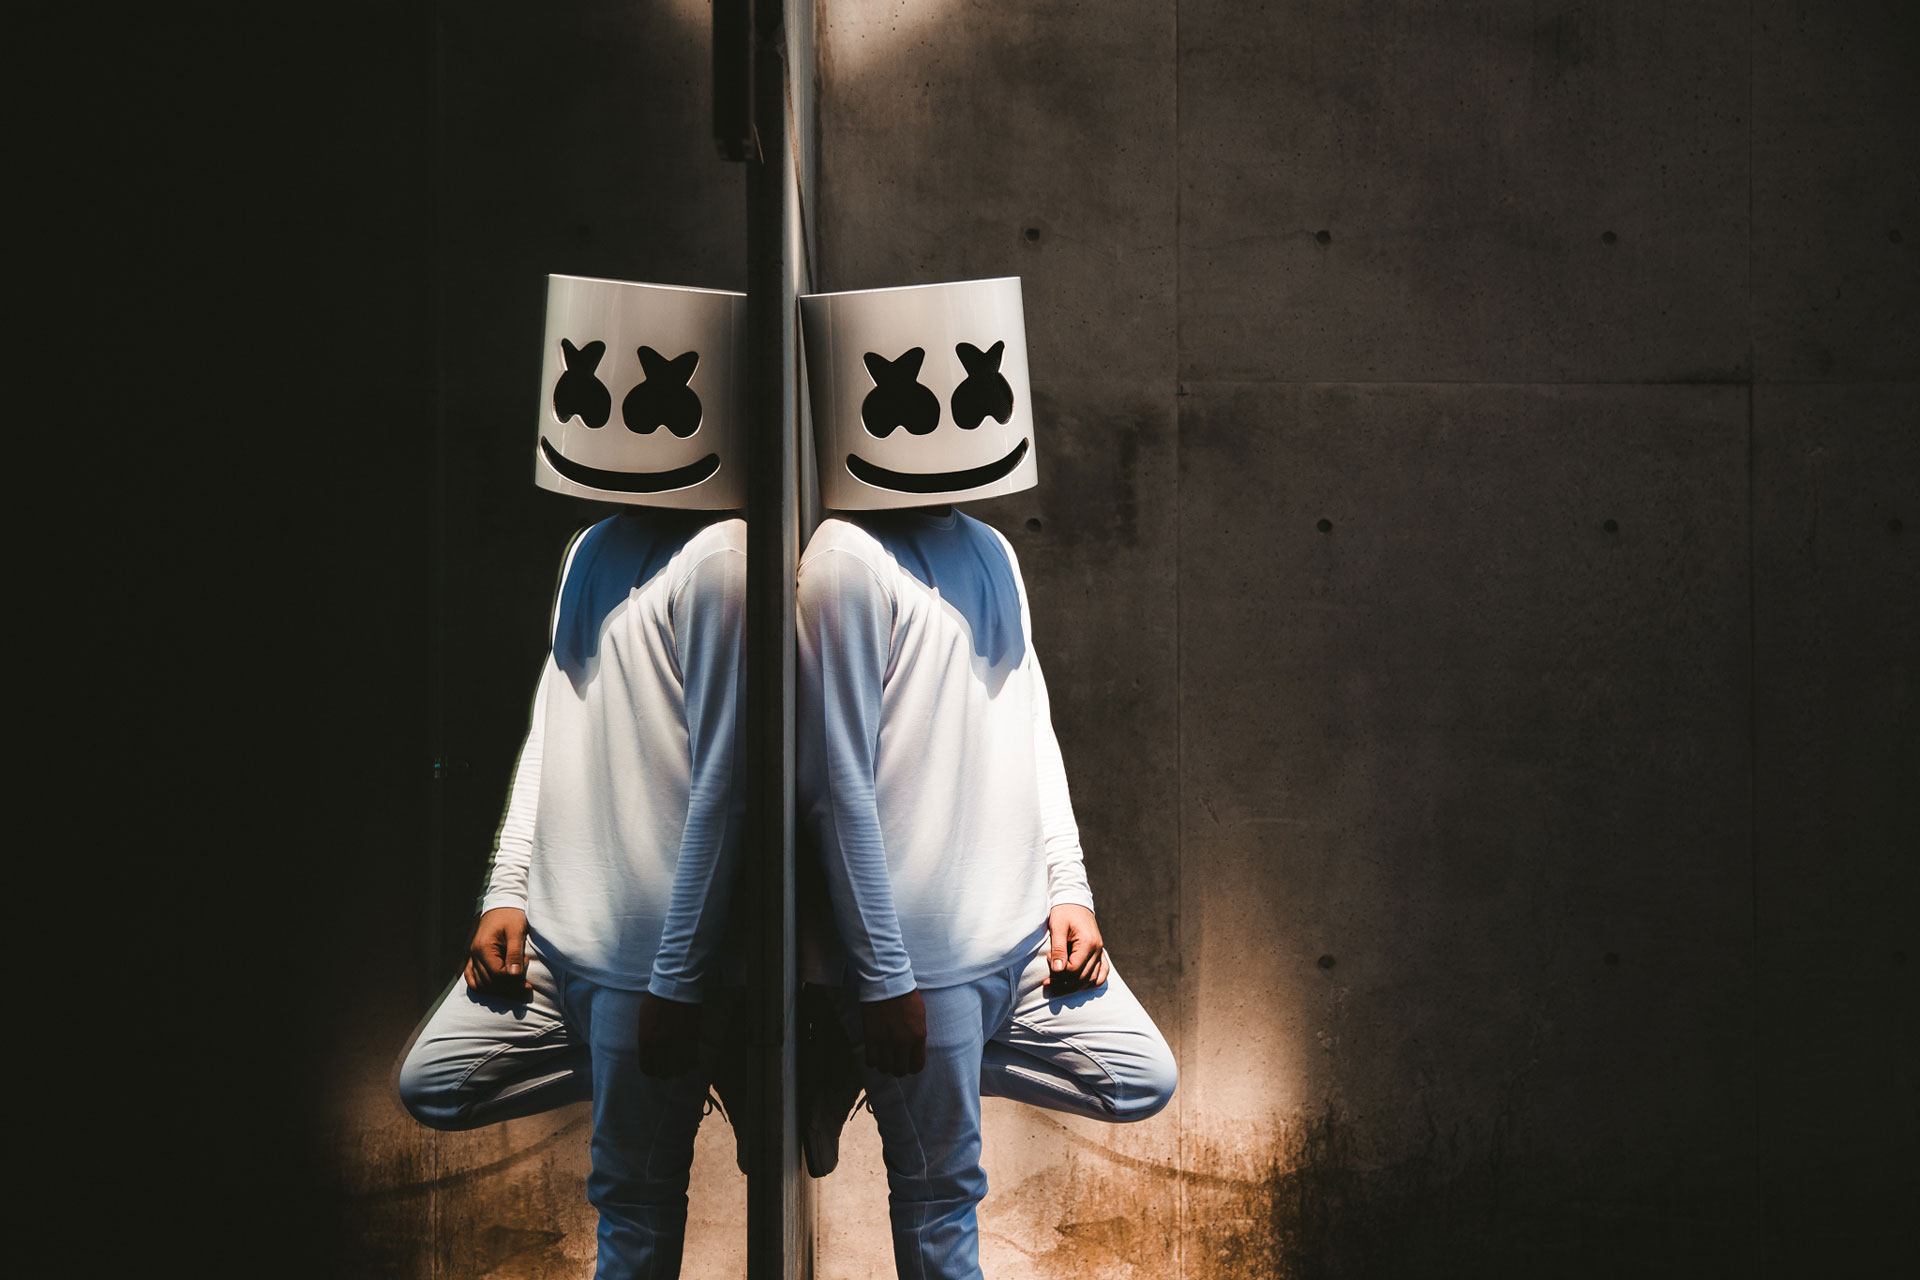 Marshmello Dj 2016 Hd Music 4k Wallpapers Images Backgrounds